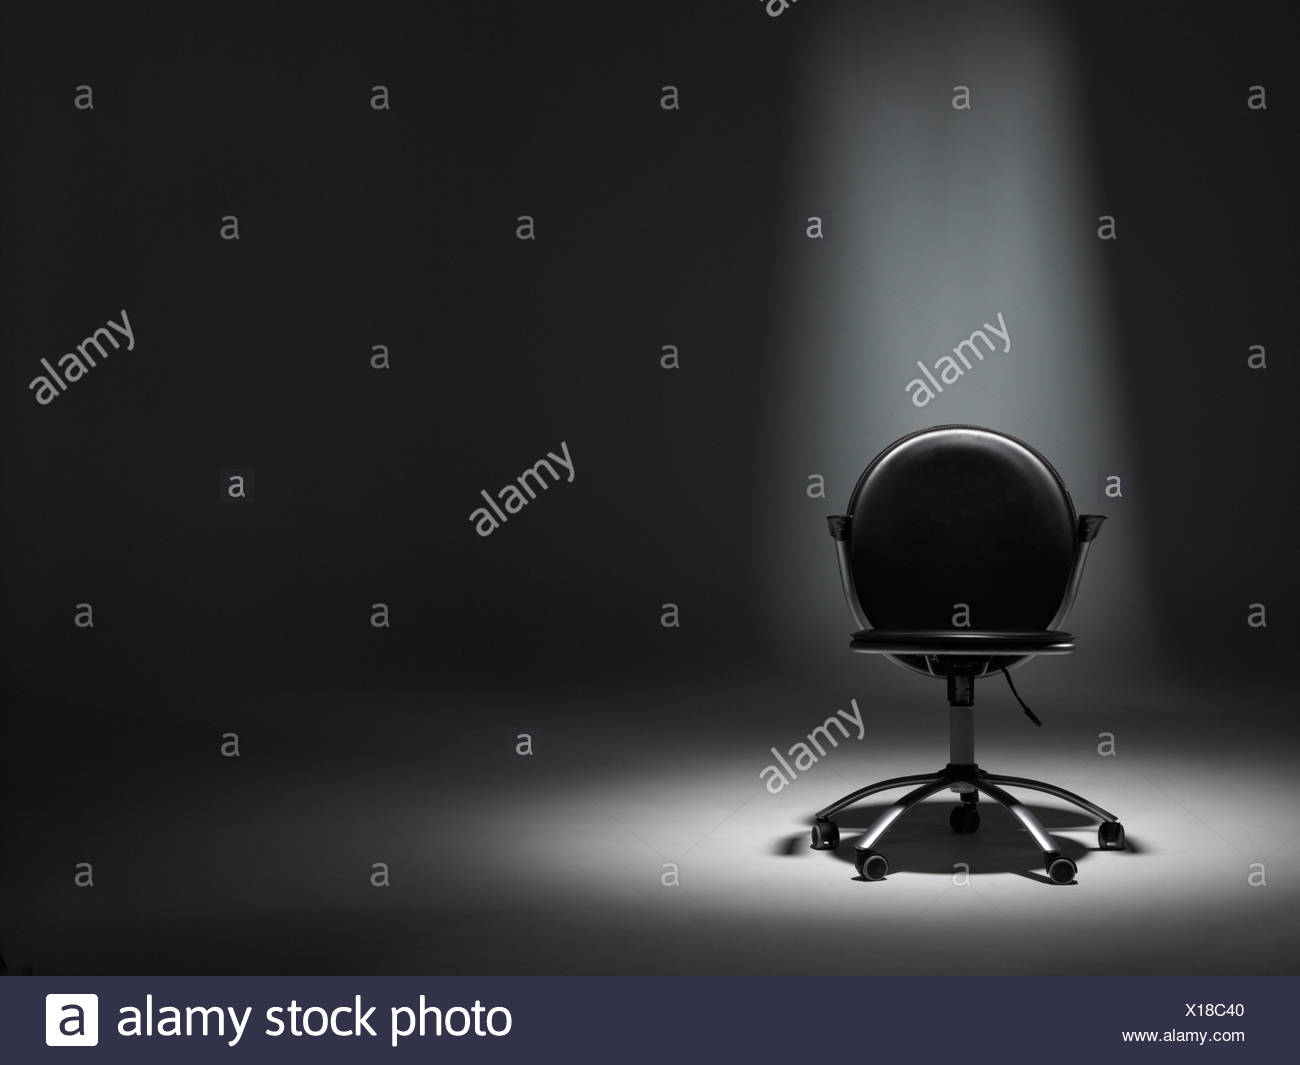 Empty Office Chair In Spotlight - Stock Image